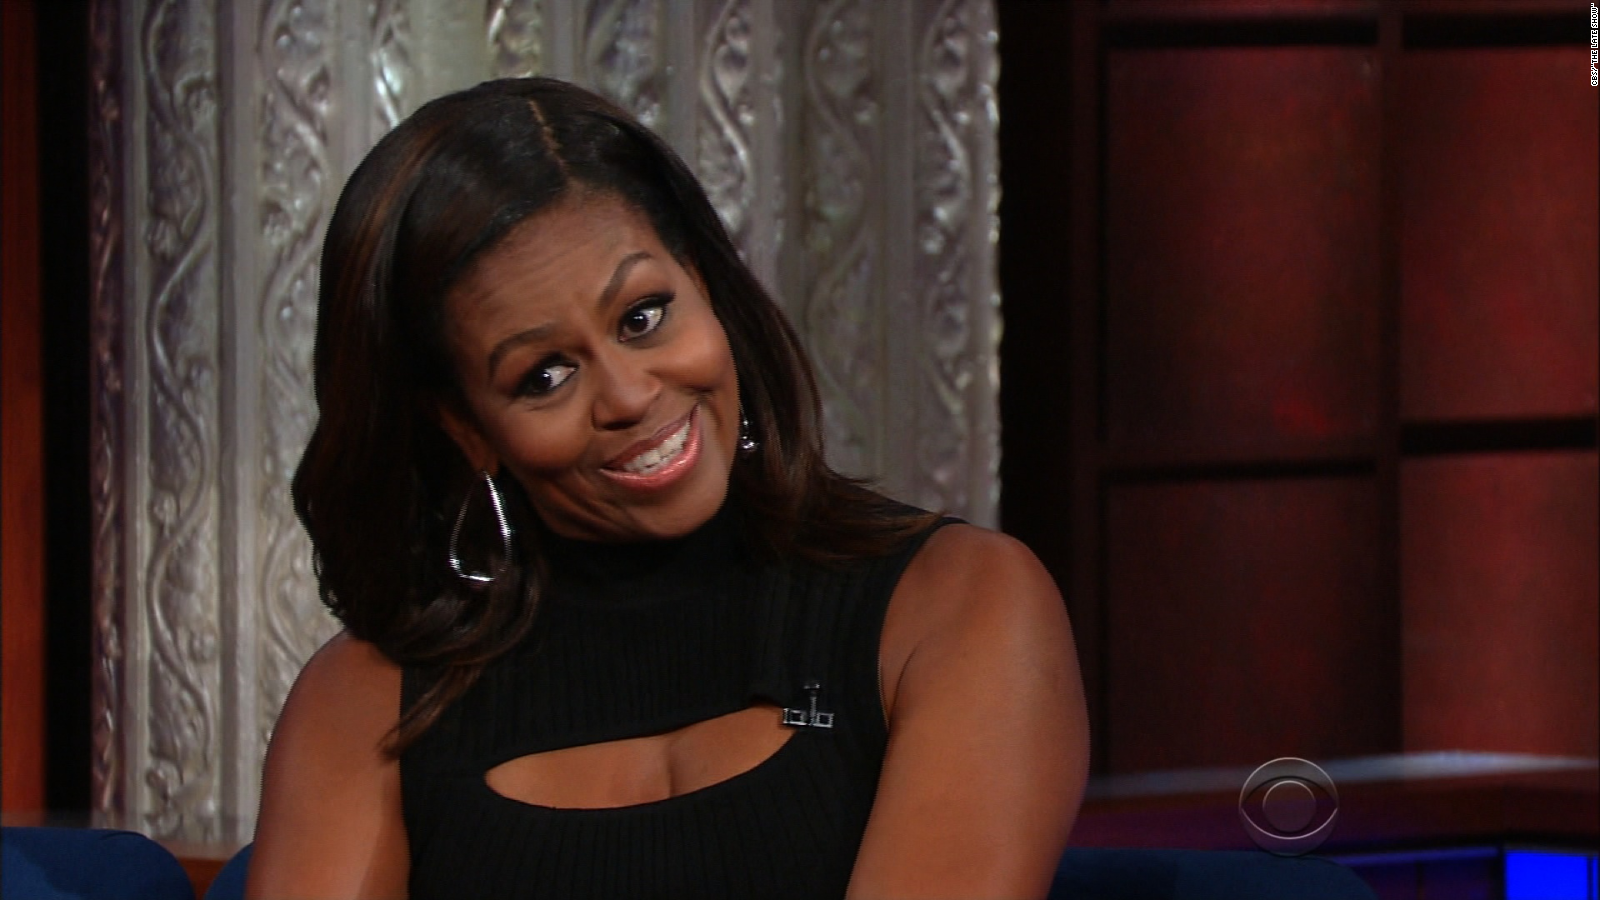 Michelle Obama Impersonates The President   CNN Video